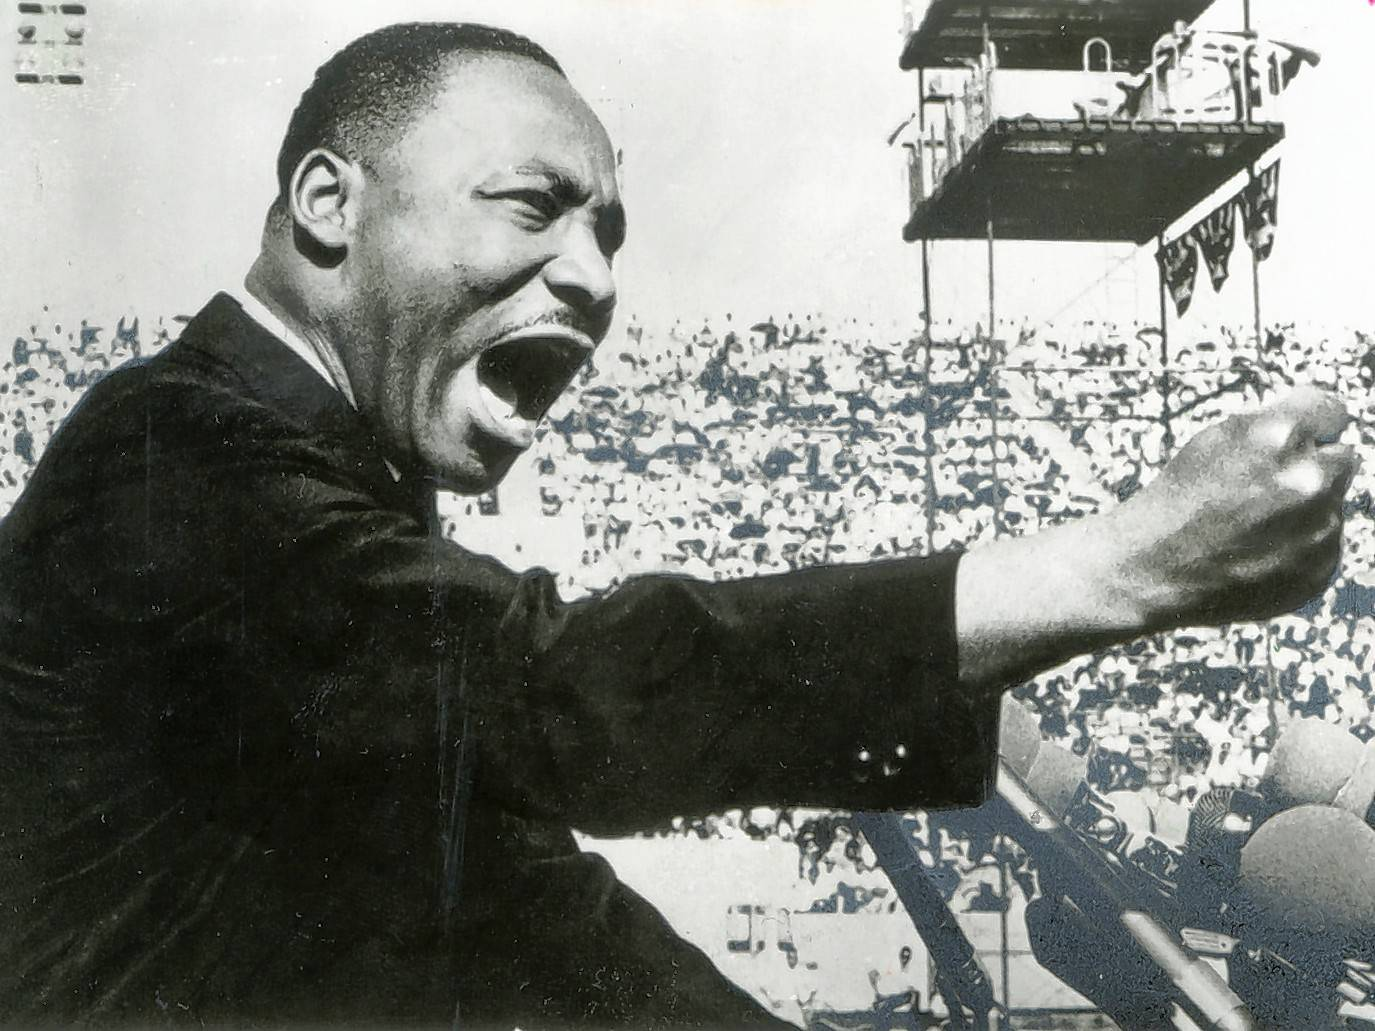 The Rev. Martin Luther King Jr. gives a speech at a Chicago Freedom Movement rally on July 10, 1966, at Soldier Field.